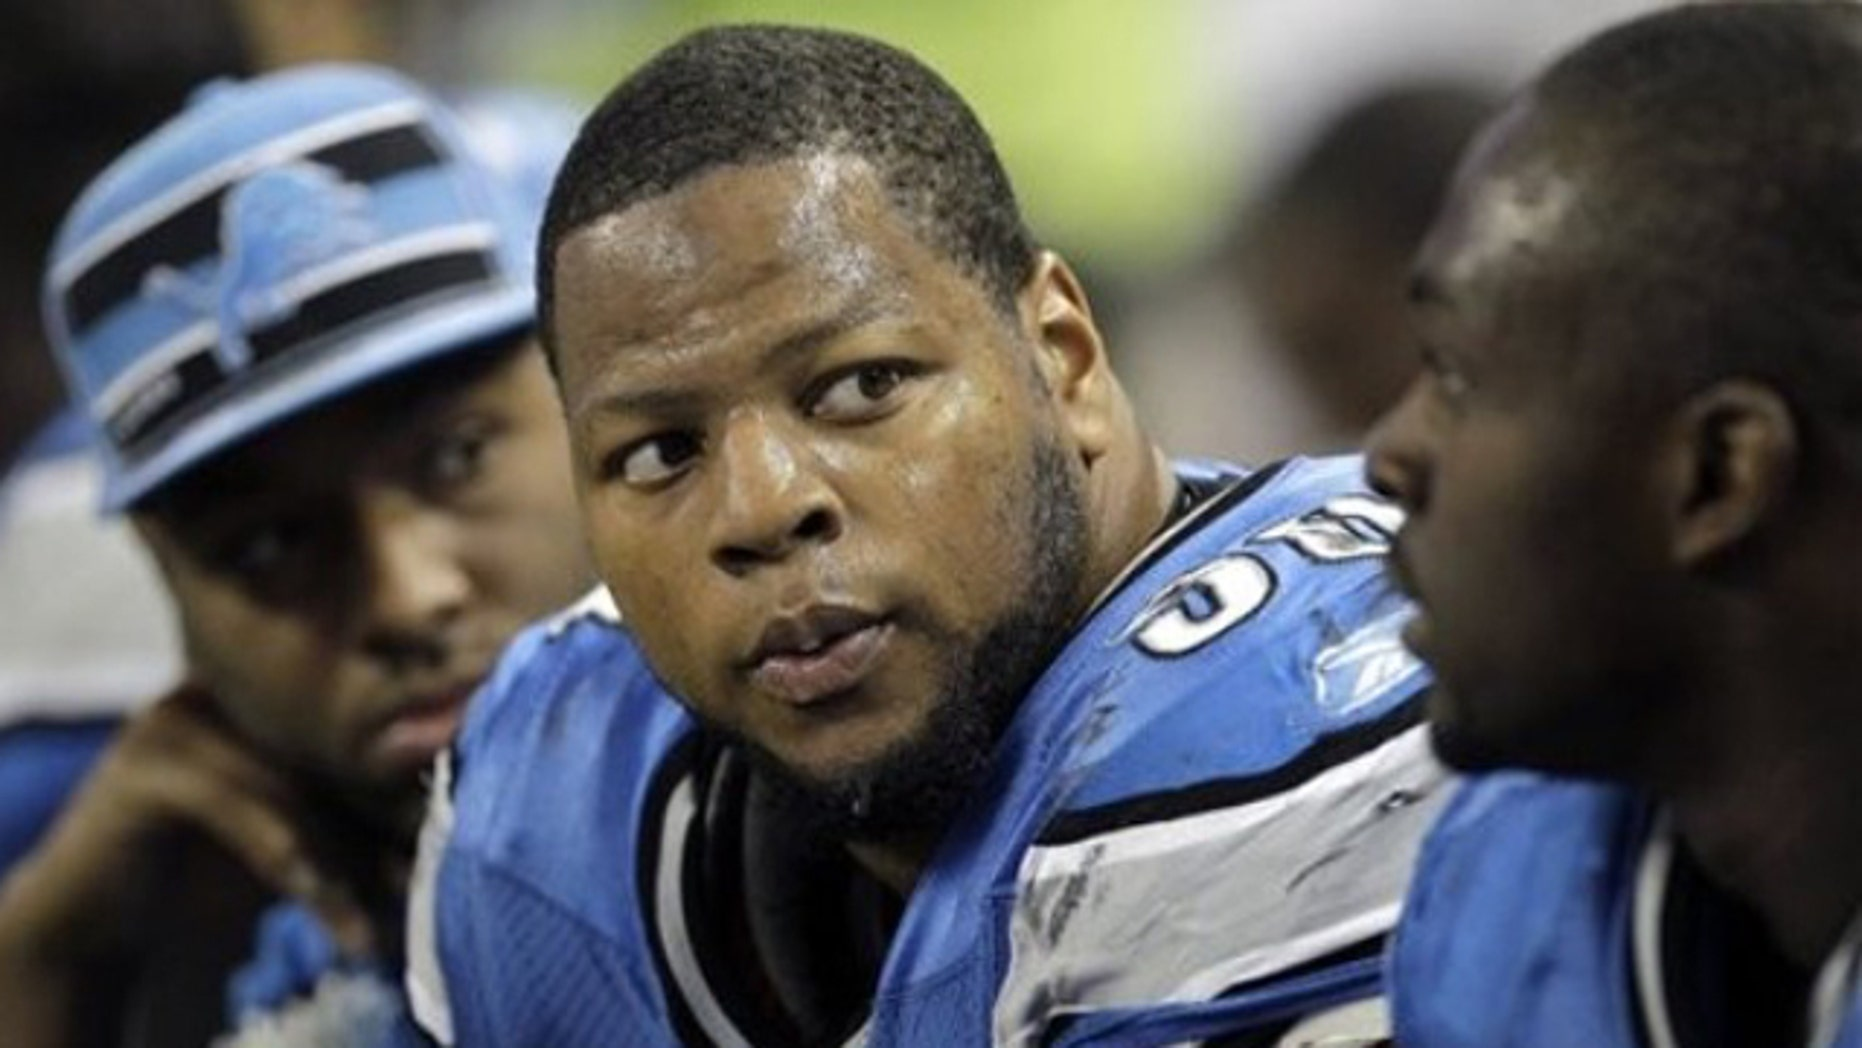 Nov. 20, 2011: FILE - In this file photo, Detroit Lions defensive tackle Ndamukong Suh (90) sits on the bench during the fourth quarter of an NFL football game against the Carolina Panthers, in Detroit.